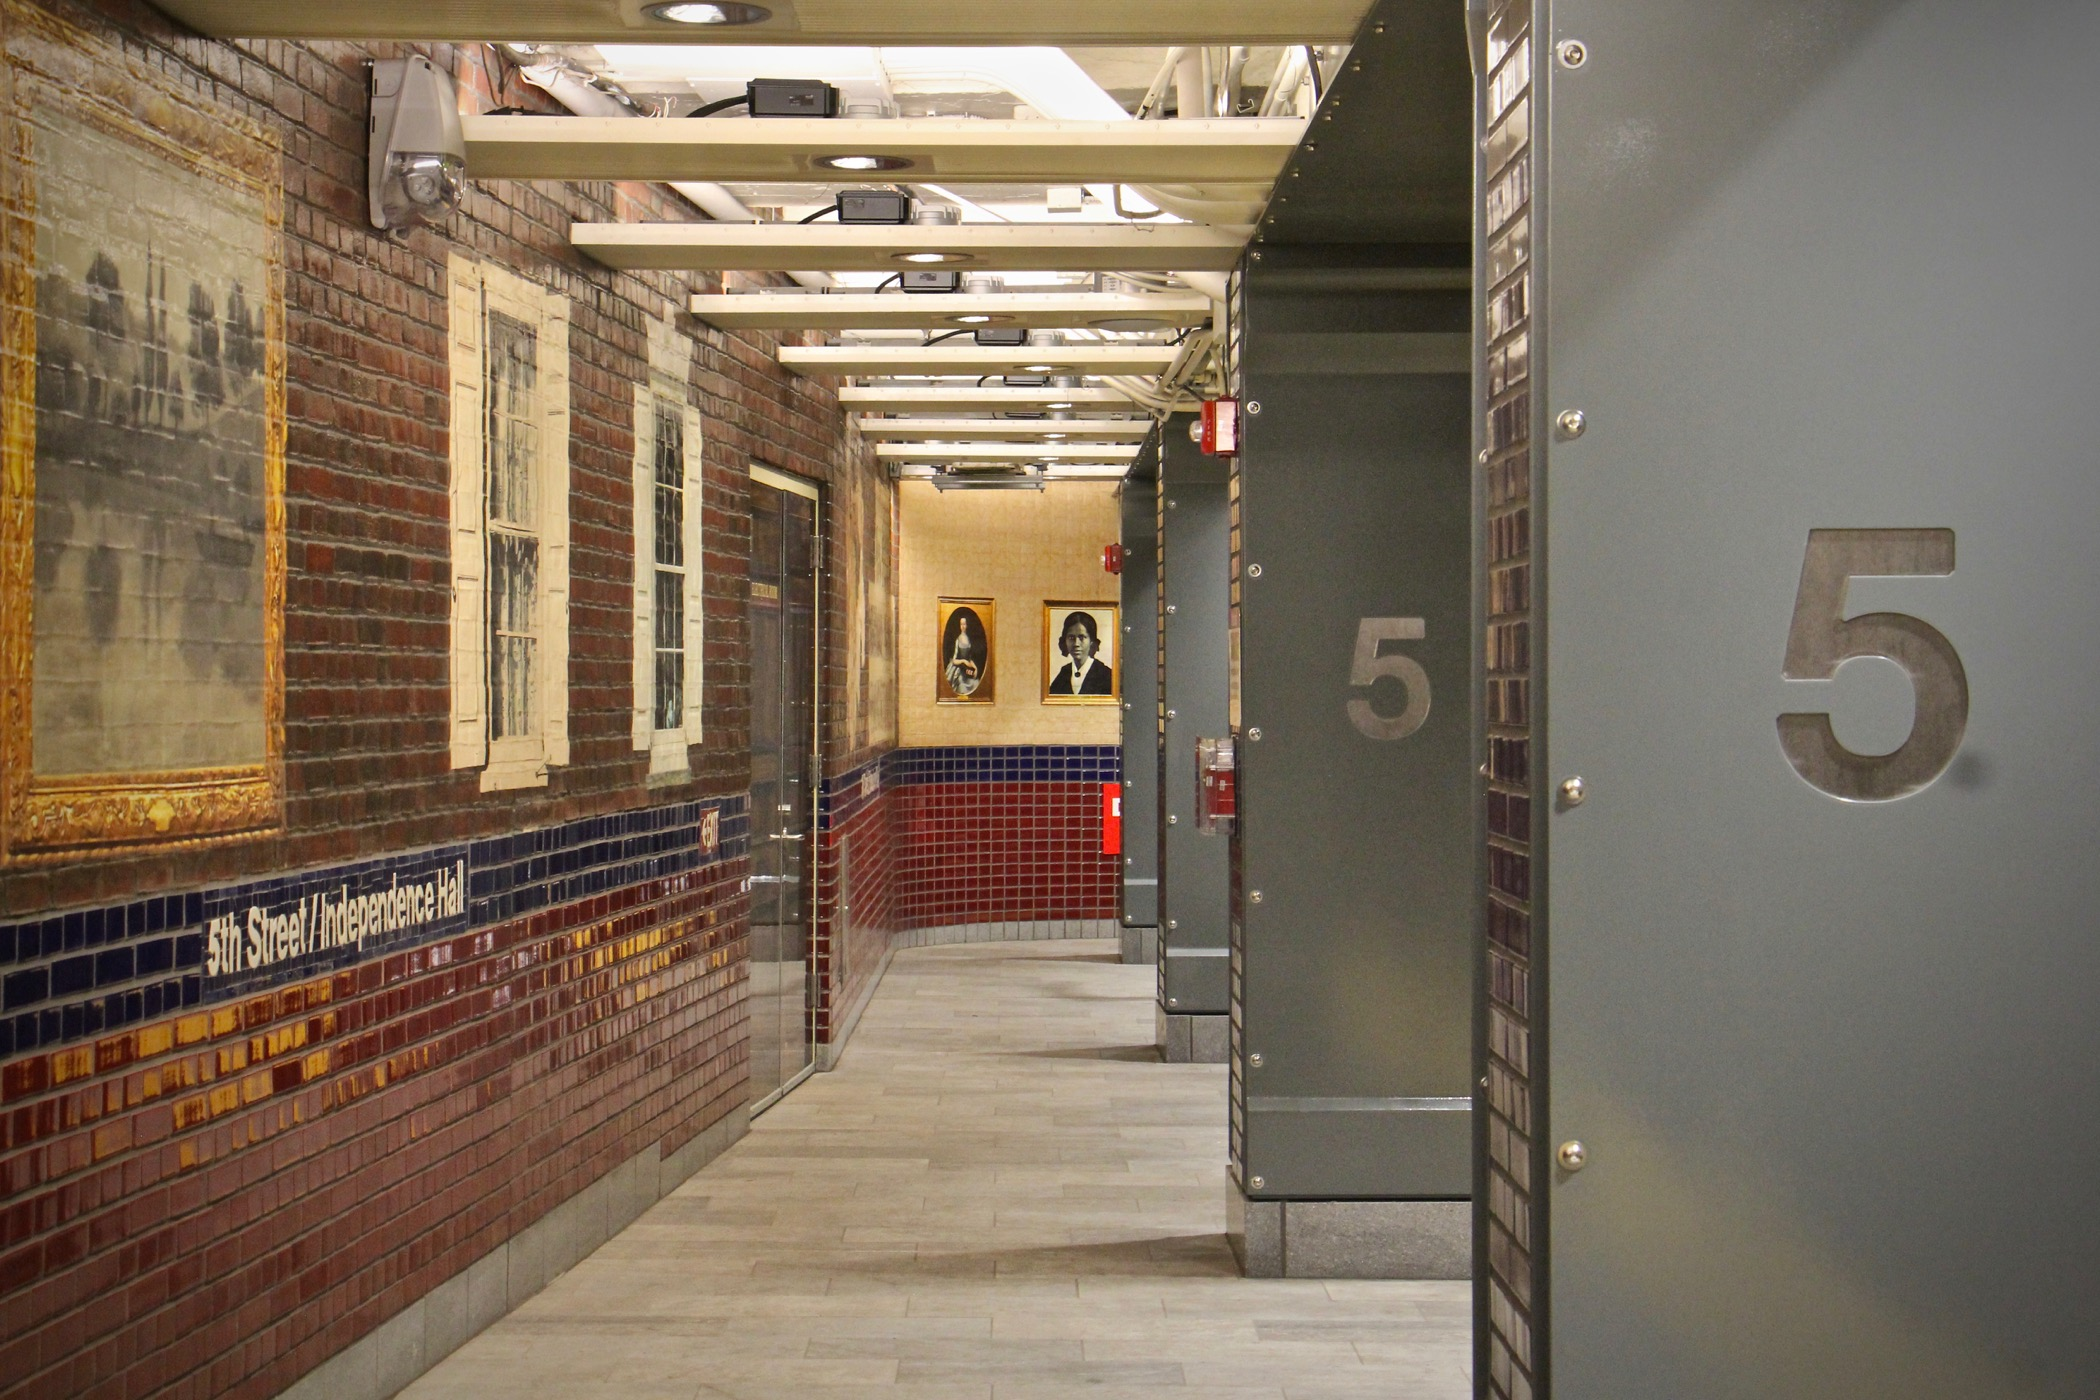 The 5th Street/Independence Hall SEPTA Station on the Market-Frankford Line is newly renovated and decorated with artworks by Philadelphia artist Tom Judd. (Emma Lee/WHYY)